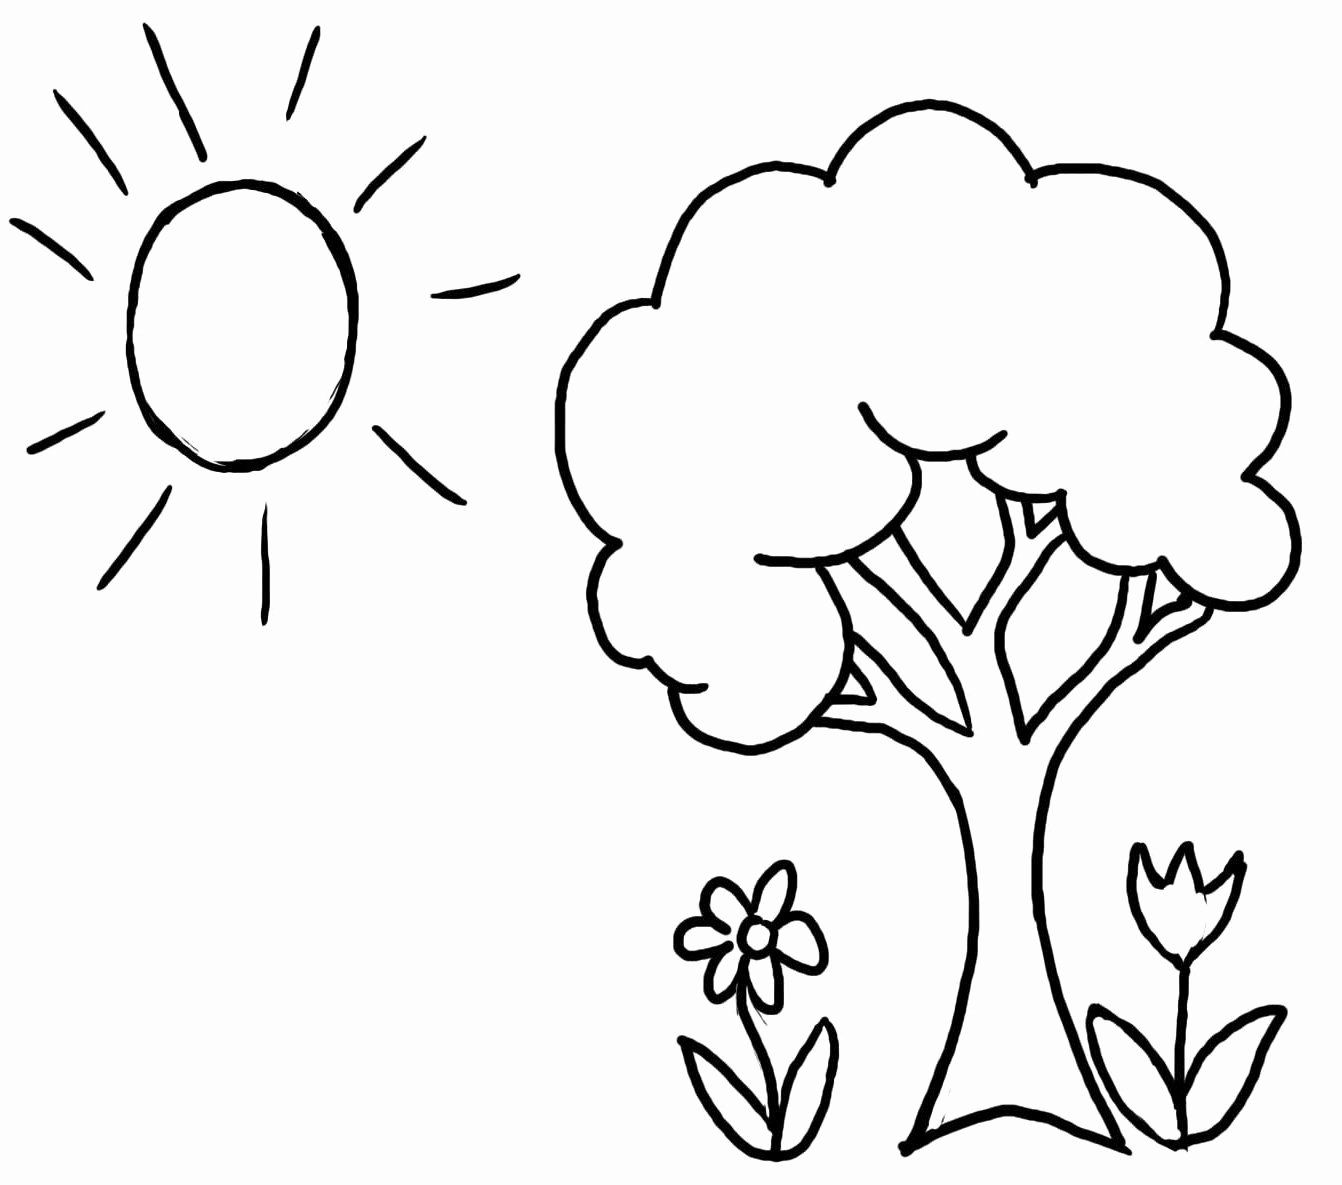 Tree Coloring Pictures To Print Unique Coloring Page Tree And Flower Coloring Pages Gallery Coloring Pages Nature Tree Coloring Page Spring Coloring Pages